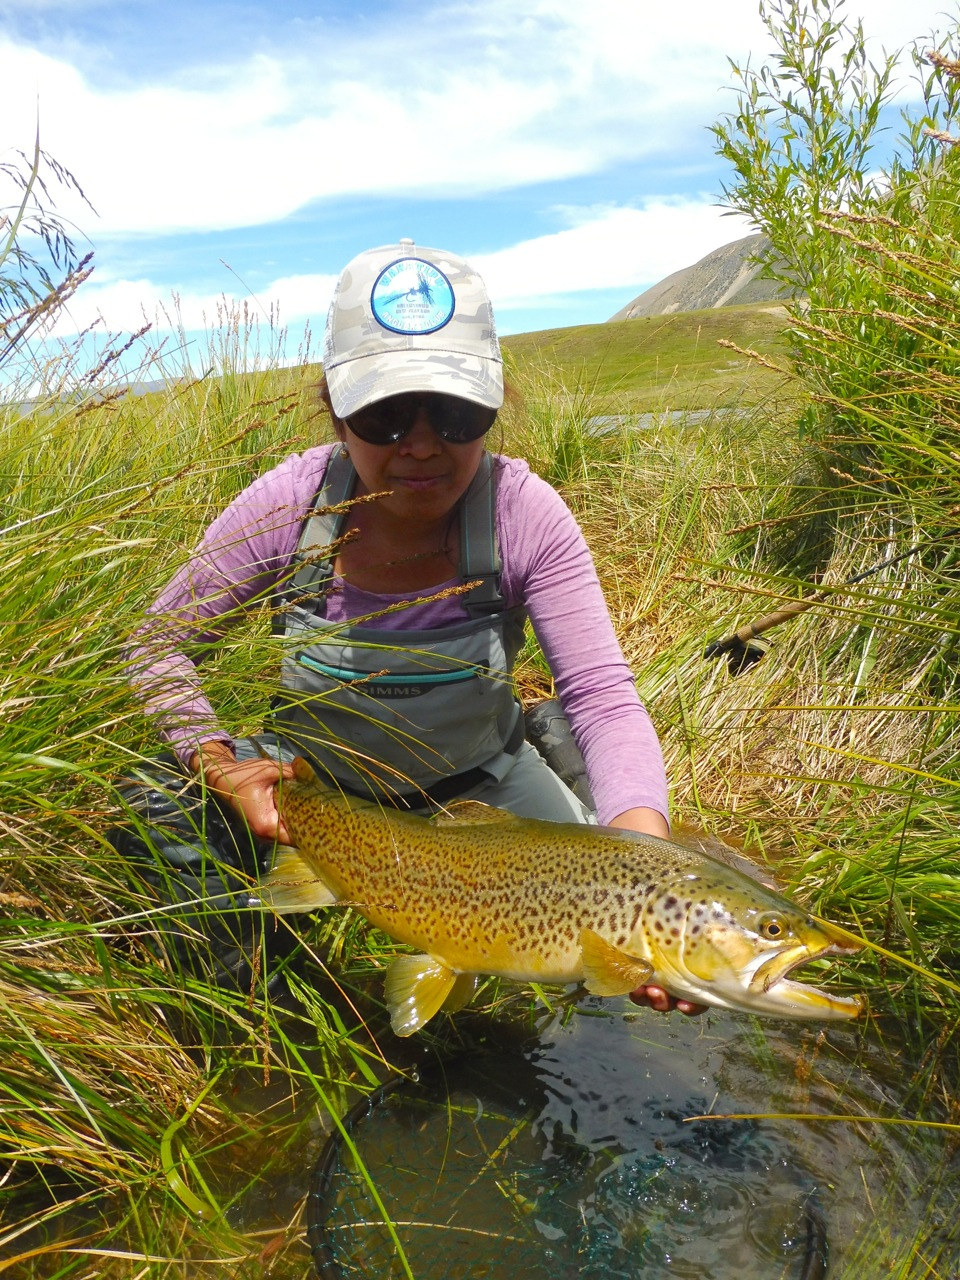 A new personal best for Iza, 7.25lbs on 4.4lb (5x) tippet. No mean feat!